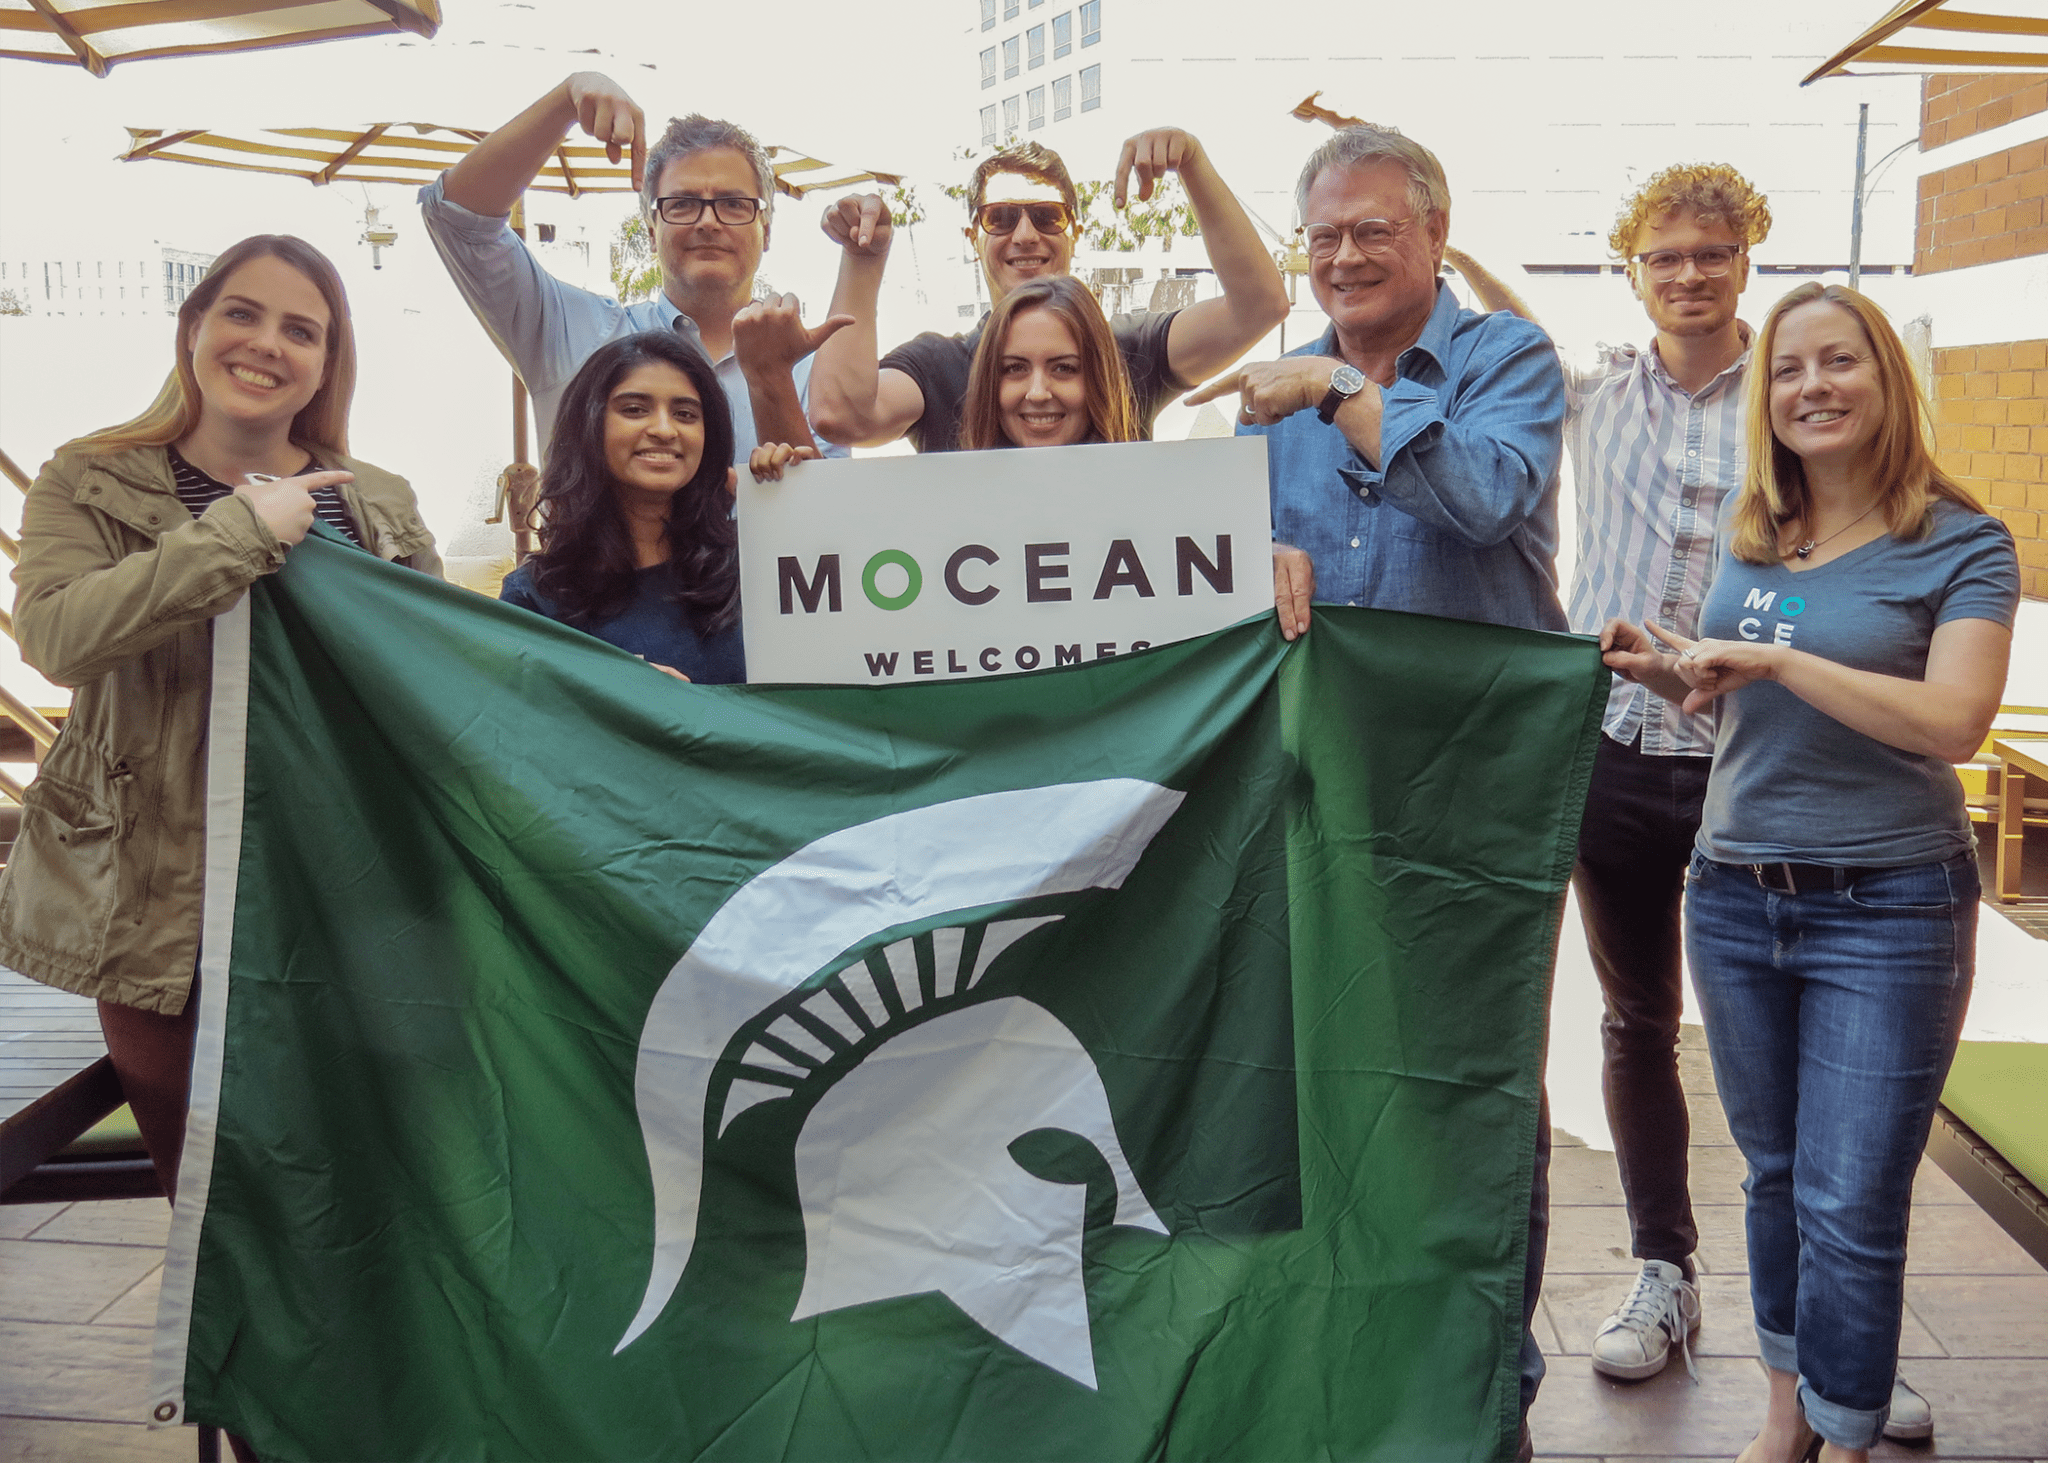 A Photo With Some Of The Other Office Spartans At MOCEAN